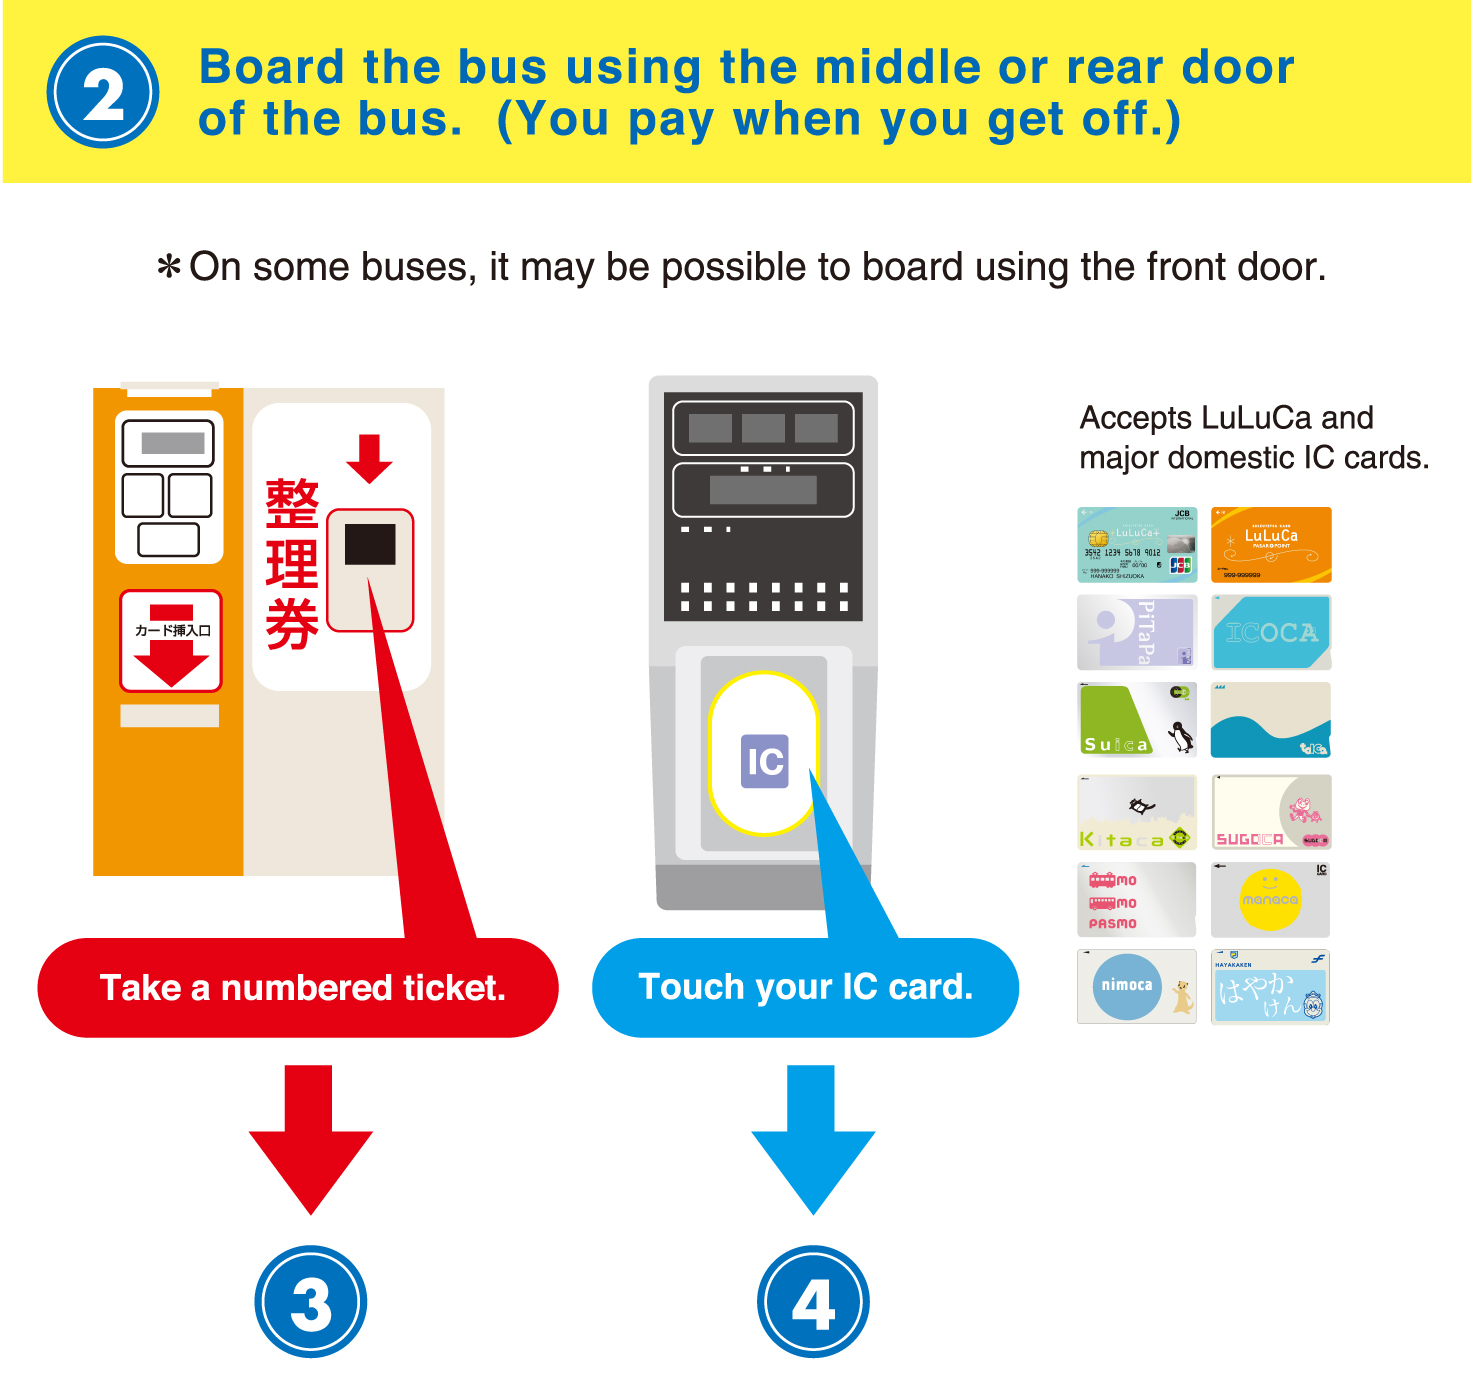 Board the bus using the middle or rear door of the bus.  (You pay when you get off.)